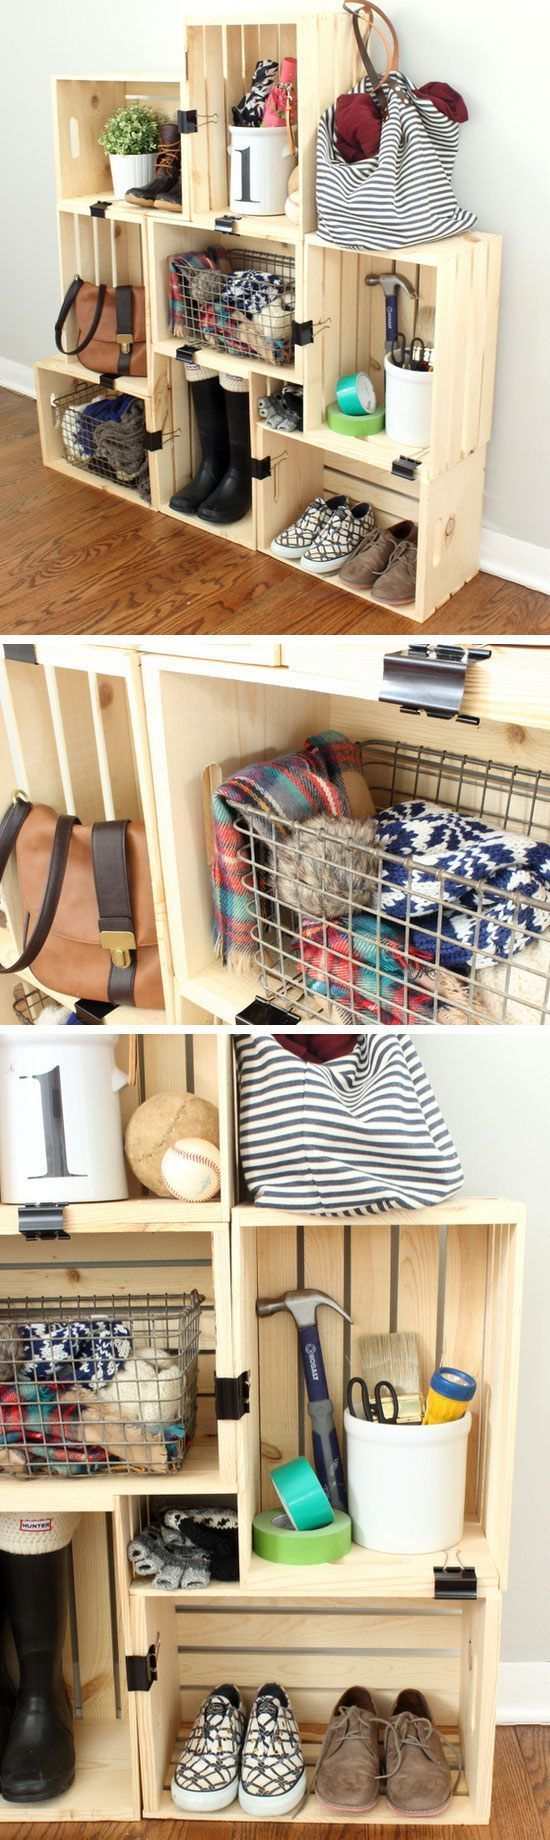 ikea hacks for your small apartment diy small apartment on diy home decor on a budget apartment ideas id=29828